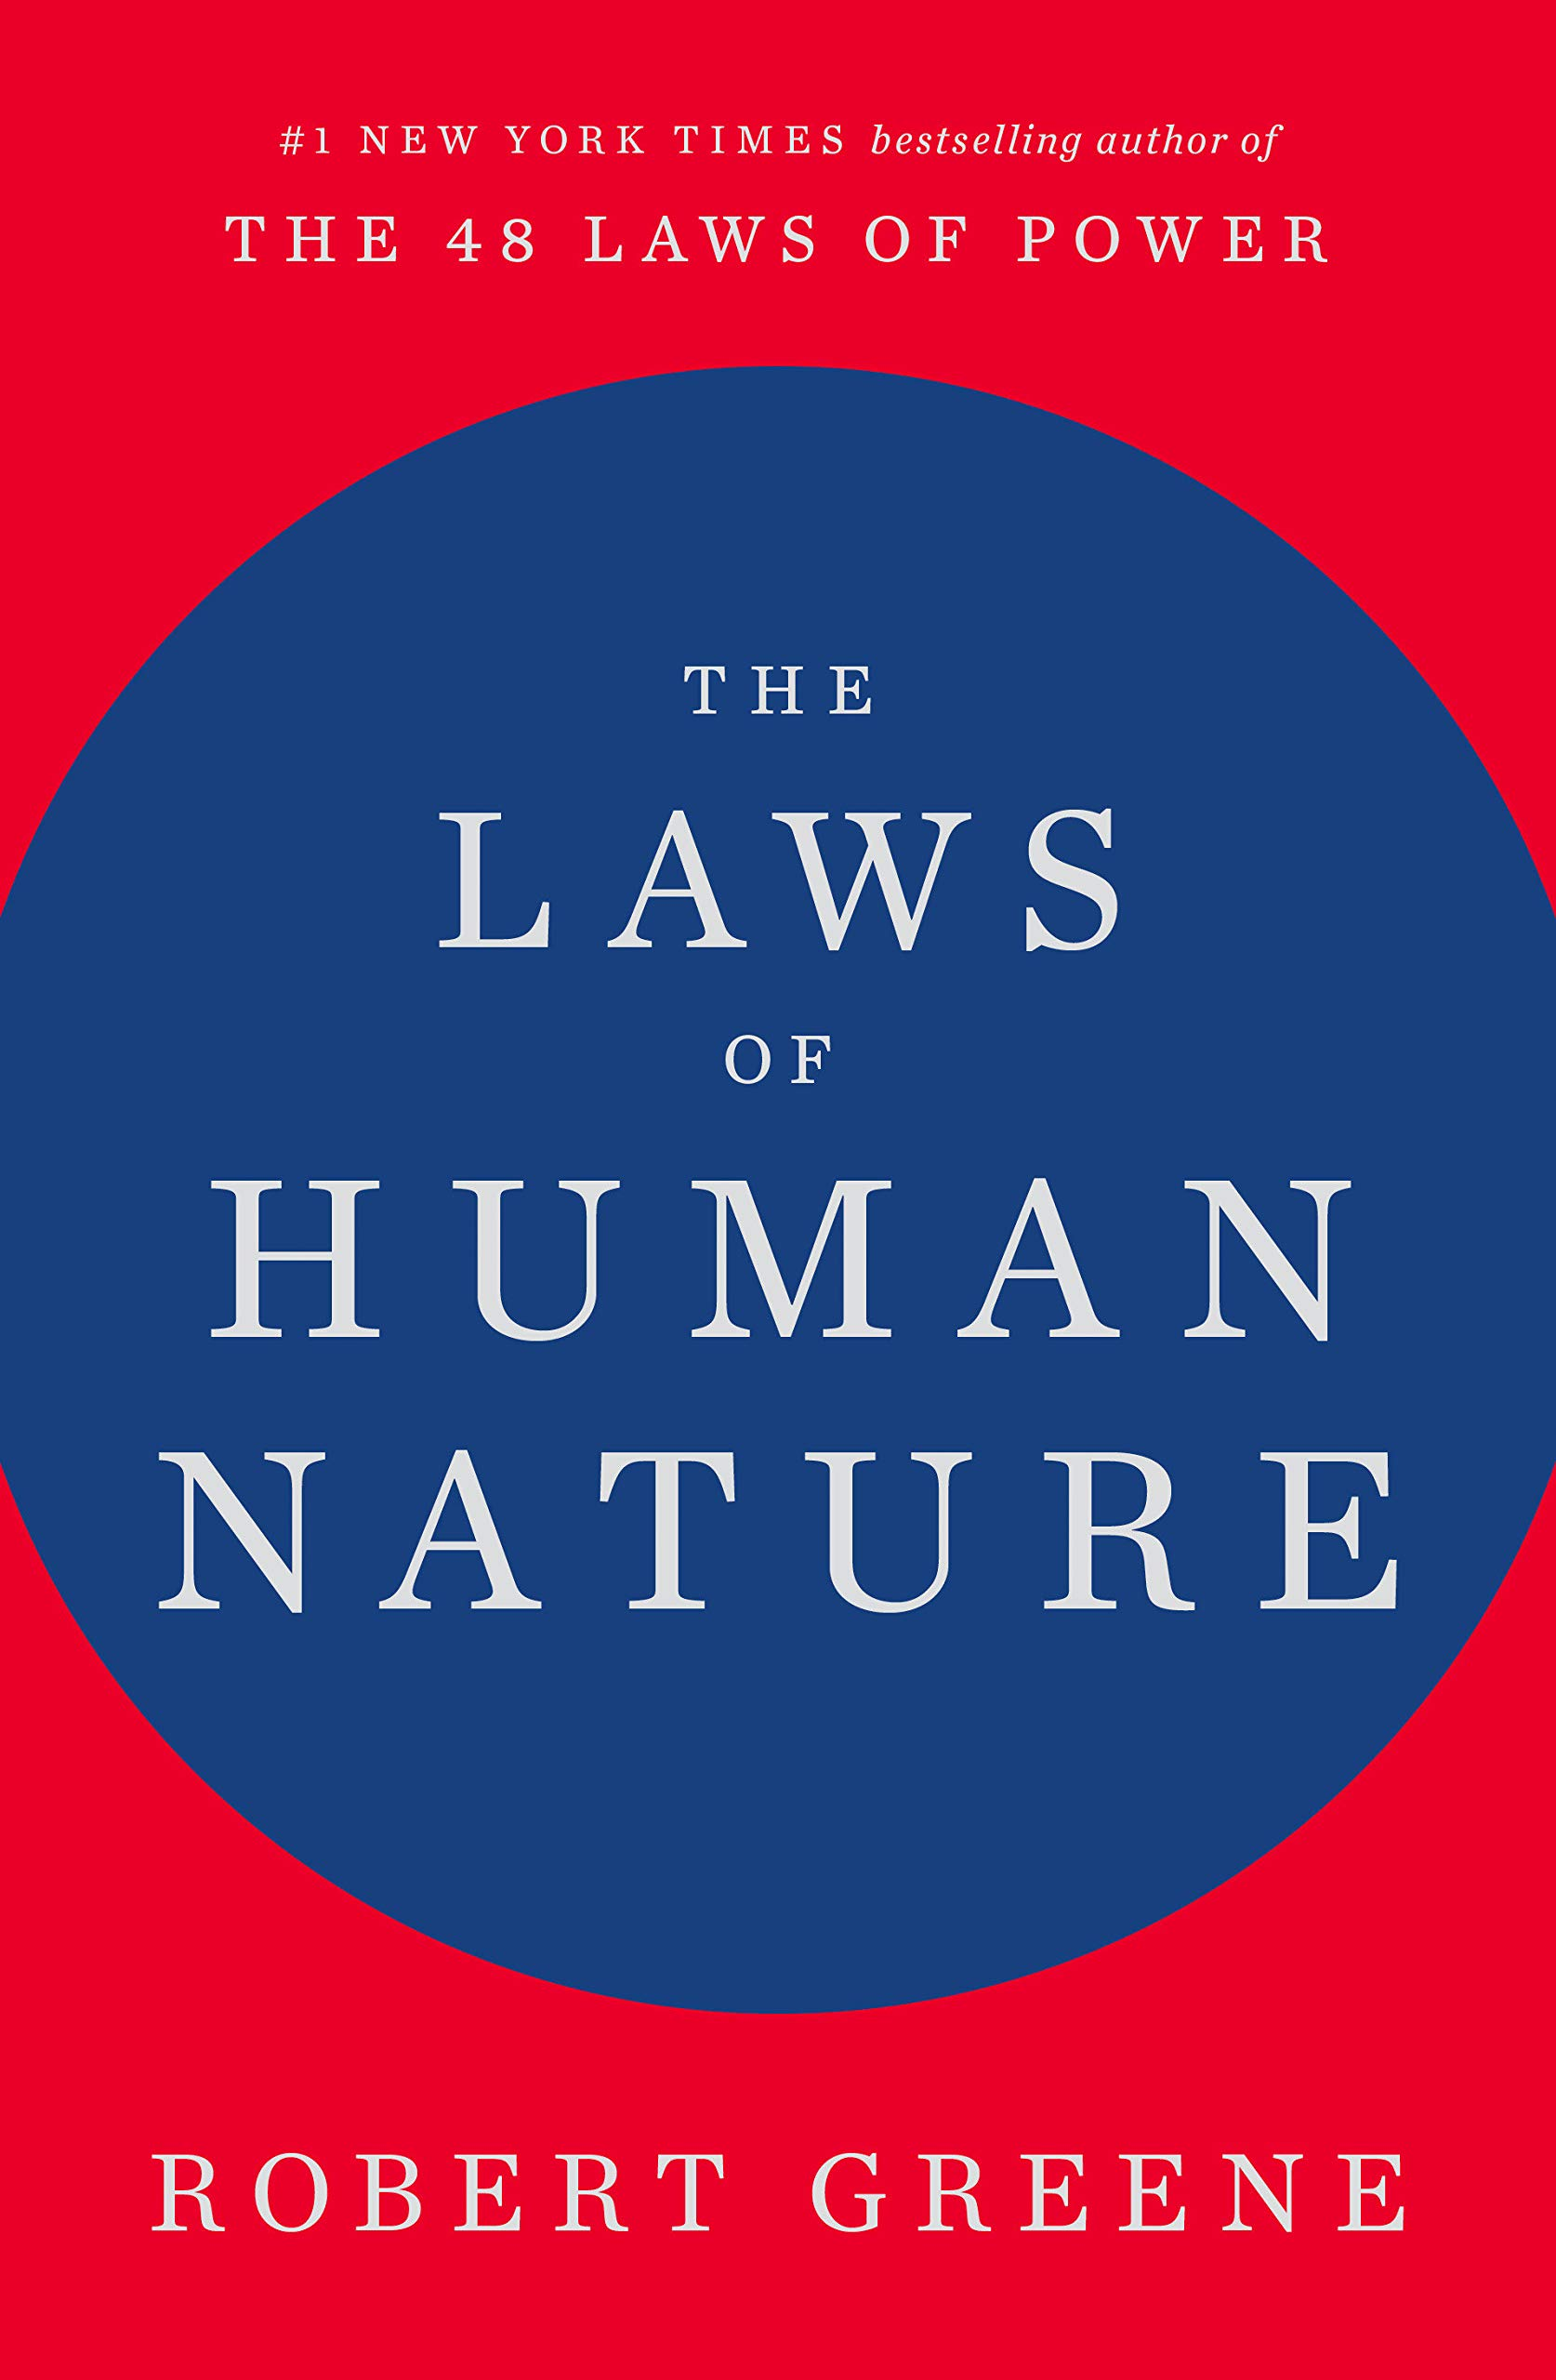 Introducing: The Laws of Human Nature (And Exclusive Pre